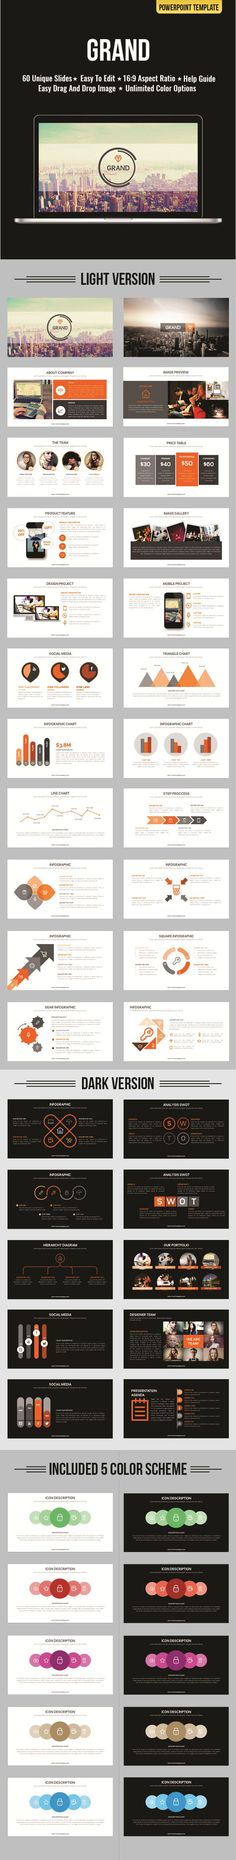 Grand PowerPoint #powerpoint #presentation Download : https://graphicriver.net/item/grand-powerpoint/11924852?s_rank=23?ref=BrandEarth